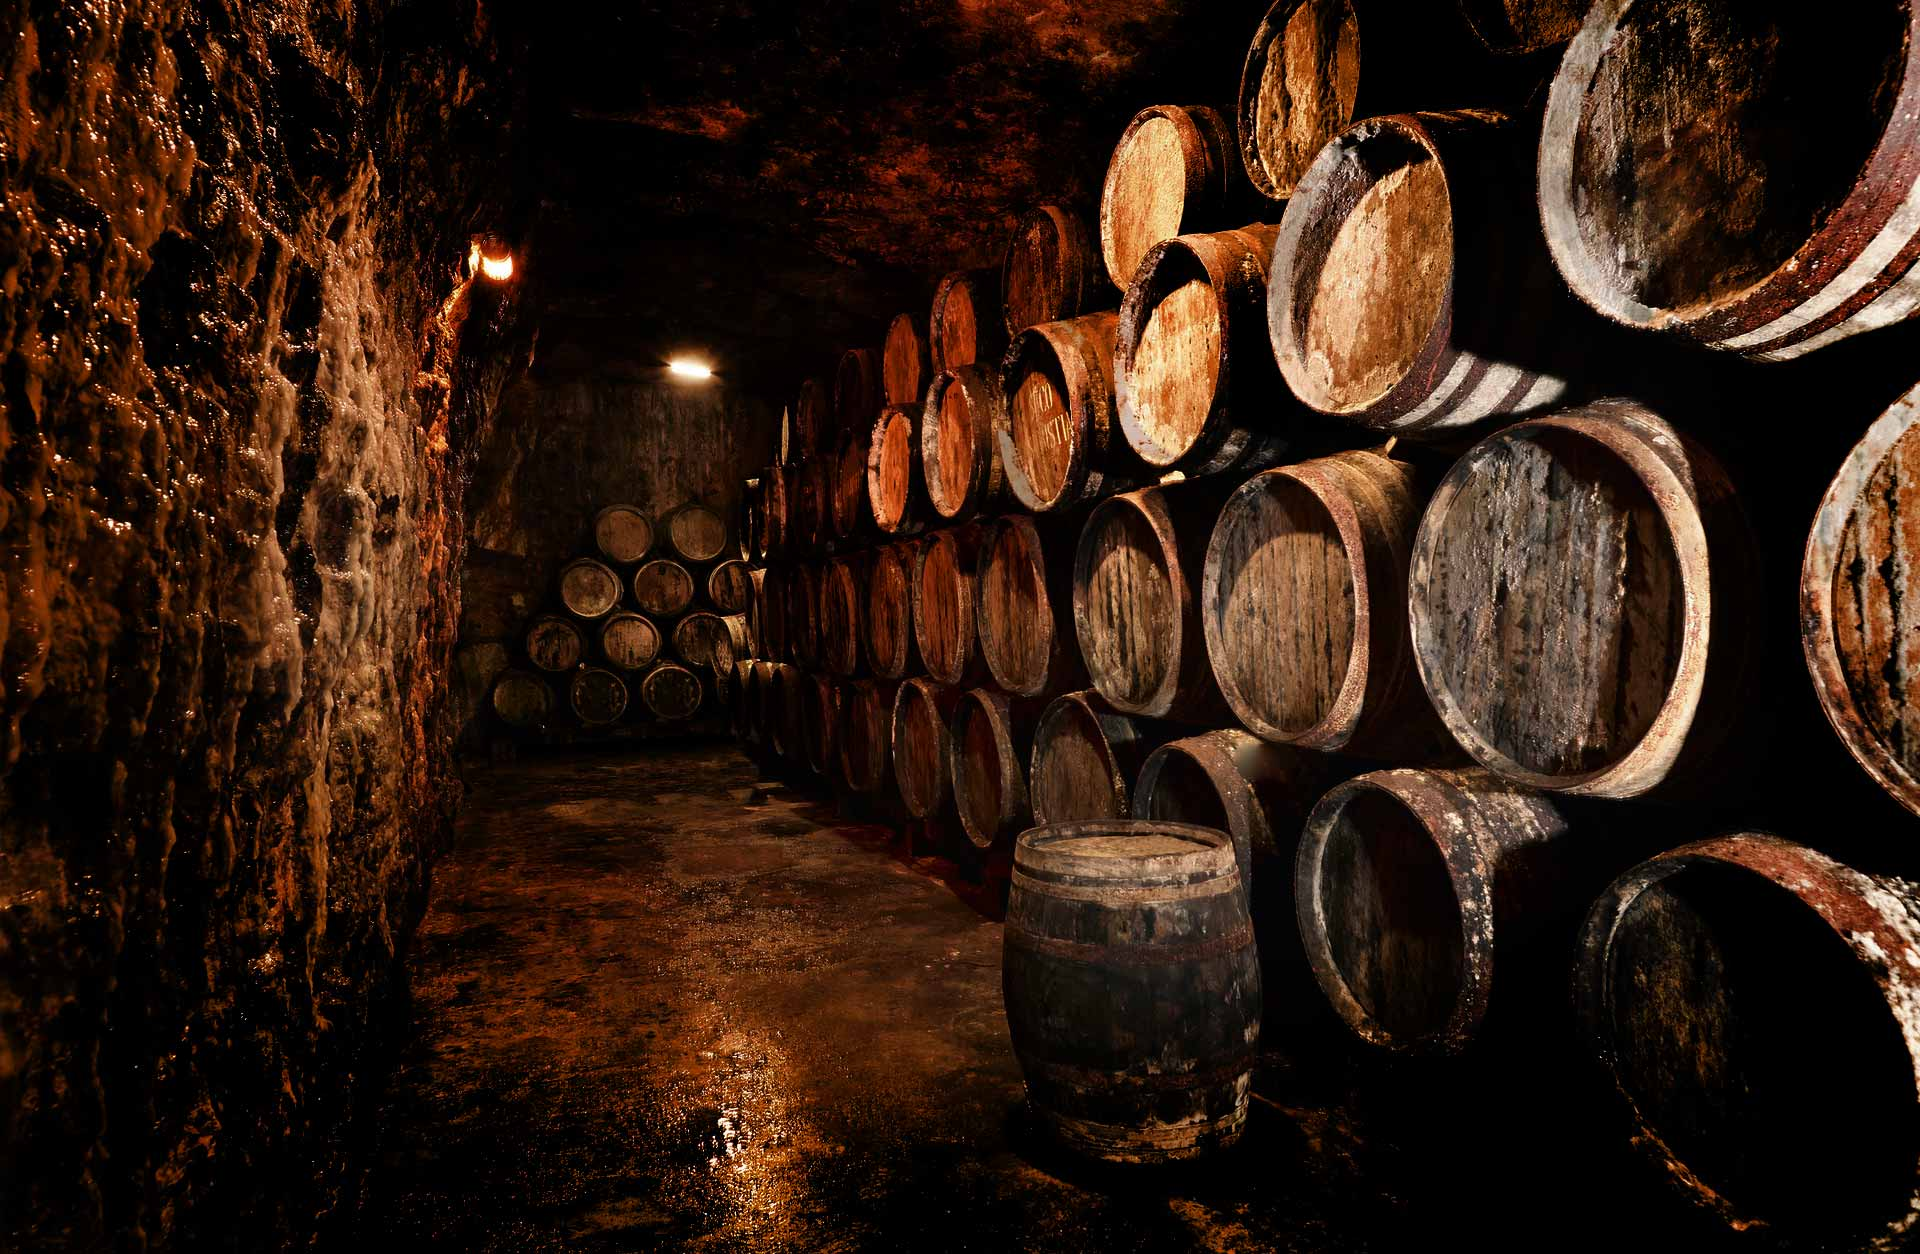 01 Cave cellar whisky michel couvreur france